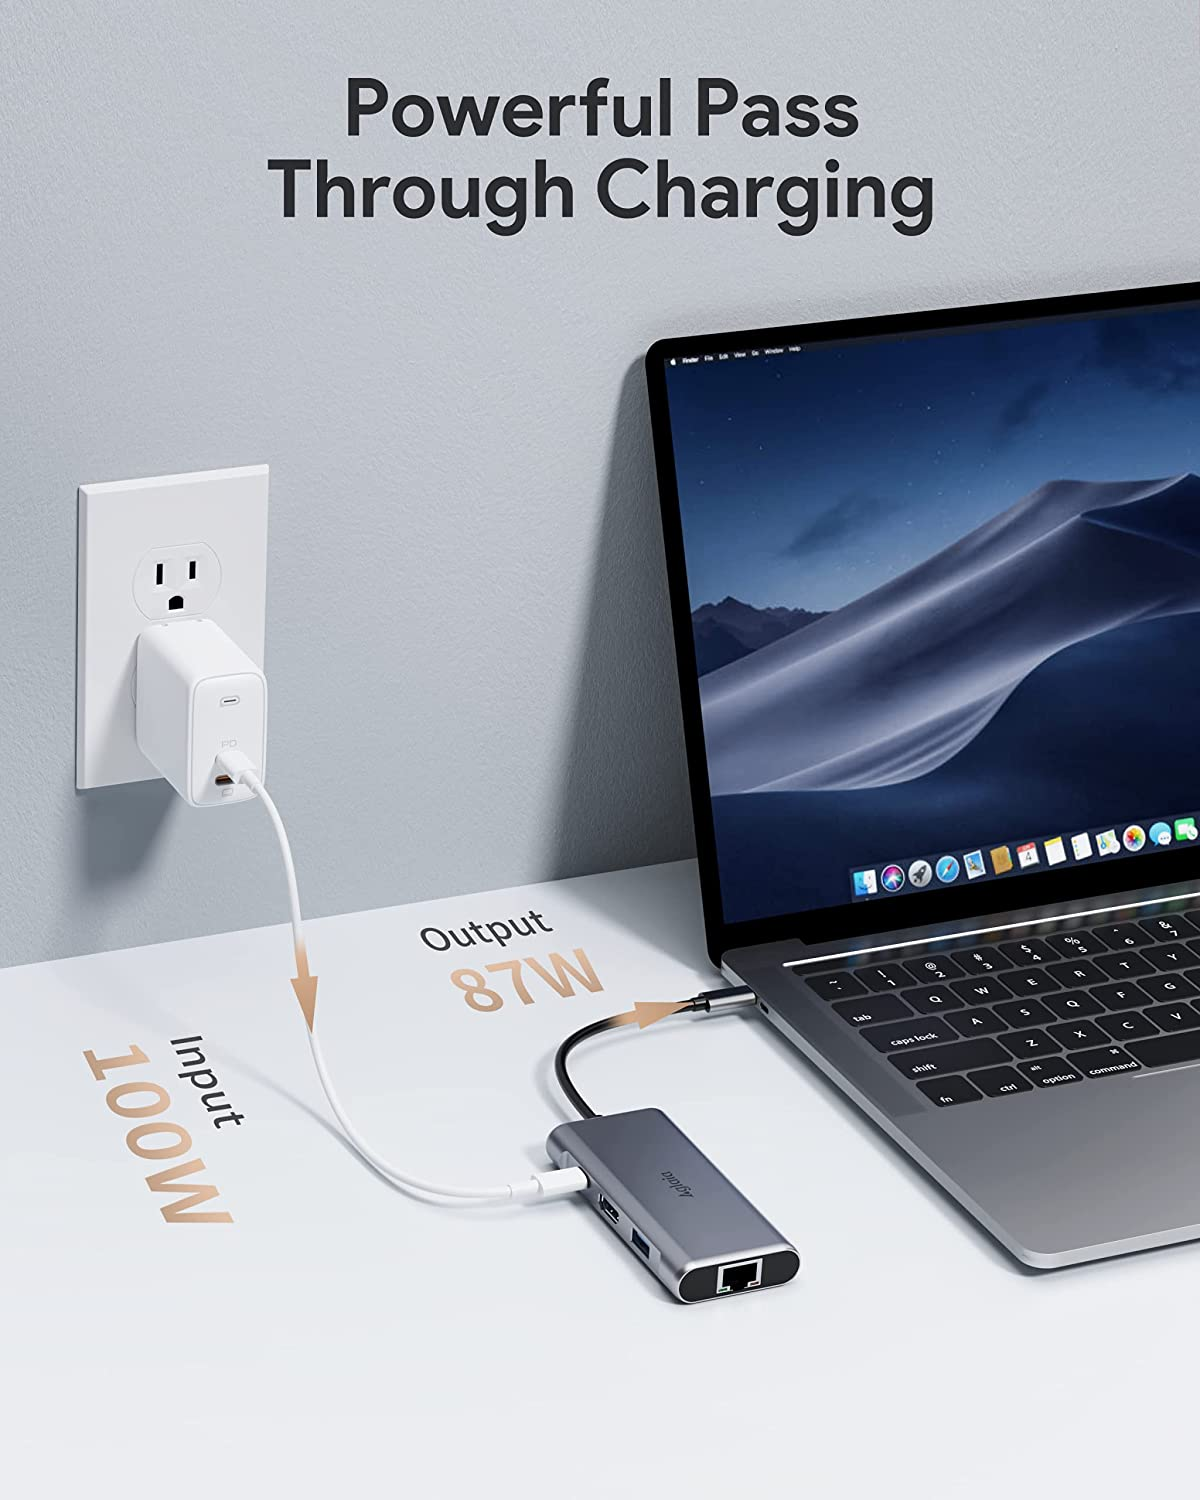 USB C Hub, Aglaia 6-in-1 Type C Adapter with 100W USB-C Power Delivery, Gigabit RJ45 Ethernet Port, 4K HDMI, 3 USB 3.0 Data Ports, Portable for MacBook Pro/Air, iPad Pro, XPS and Other Type C Devices